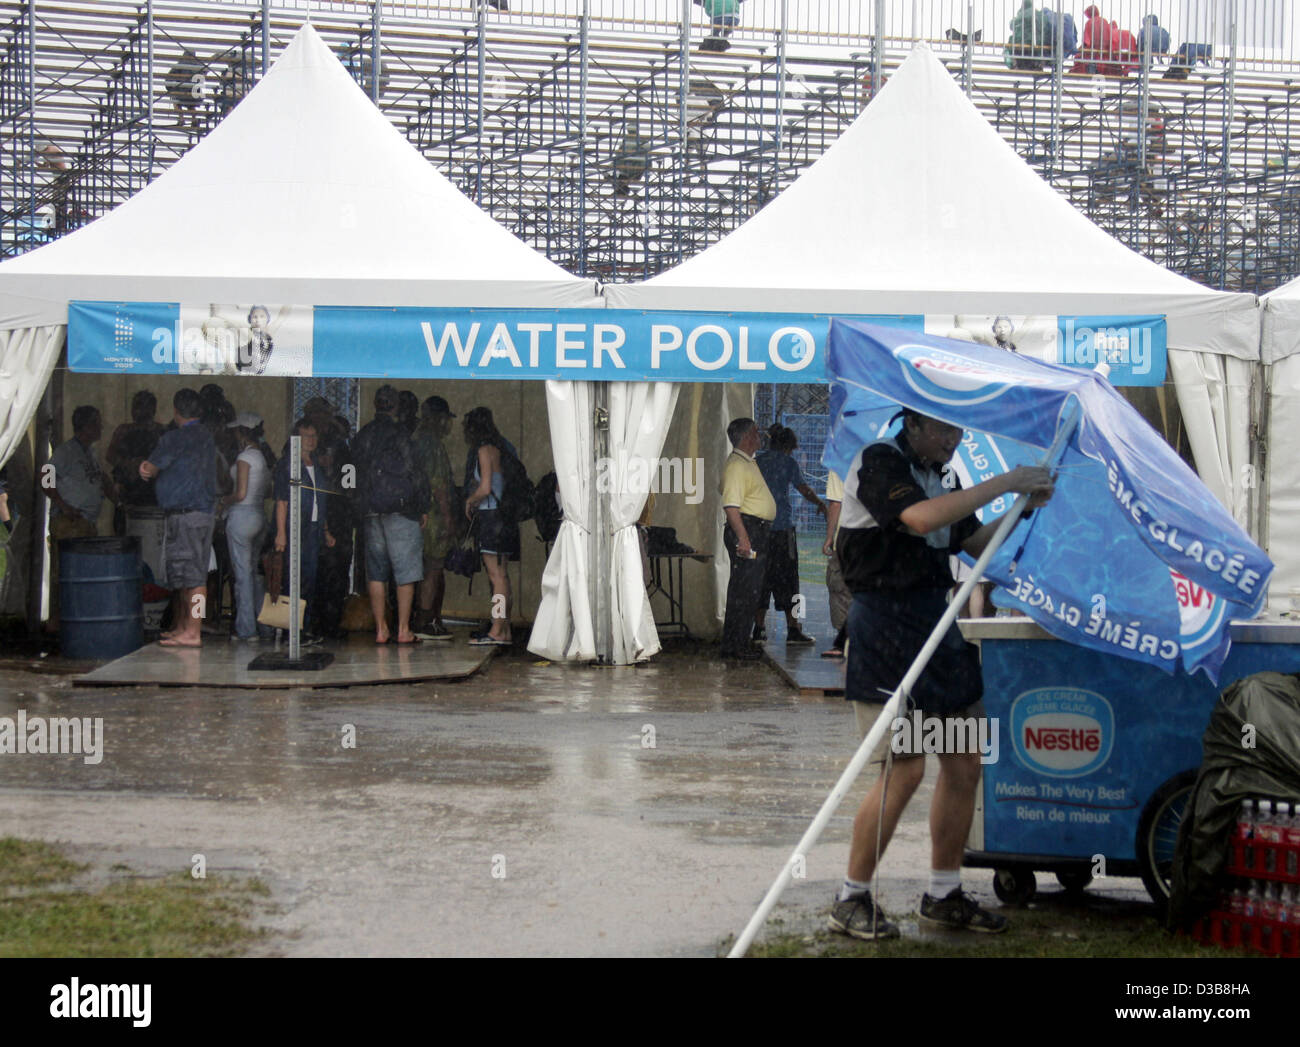 (dpa) - Spectators seek shelter underneath two marquees from a heavy downpour at the entrance to the water polo - Stock Image